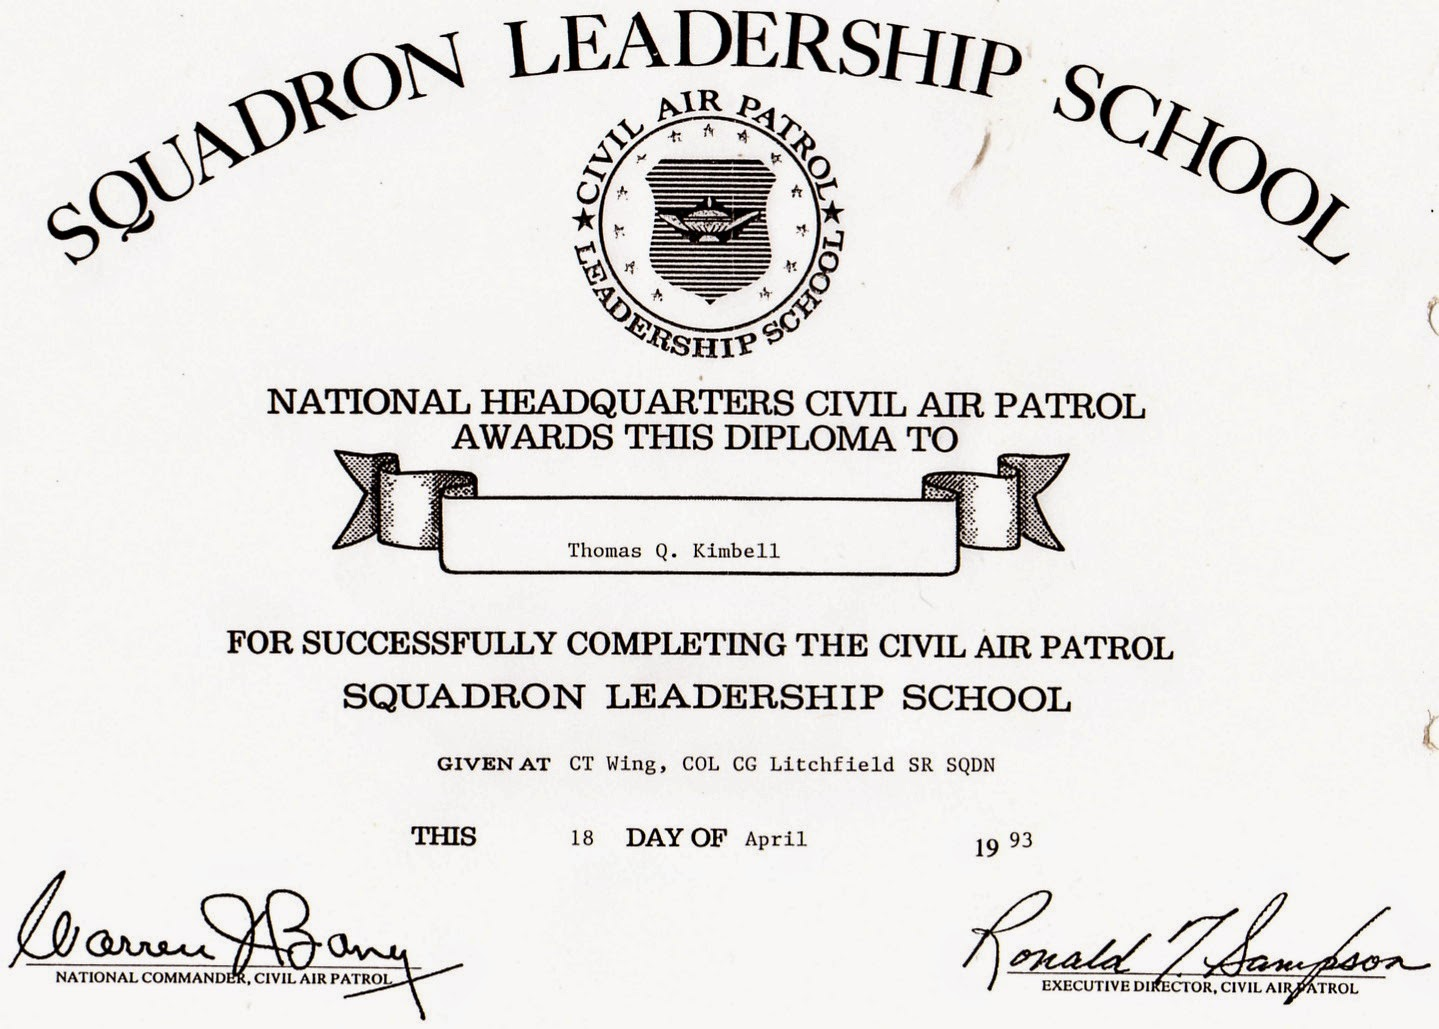 Civil Air Patrol Squadron Leadership School (SLS) Certificate in April 1993